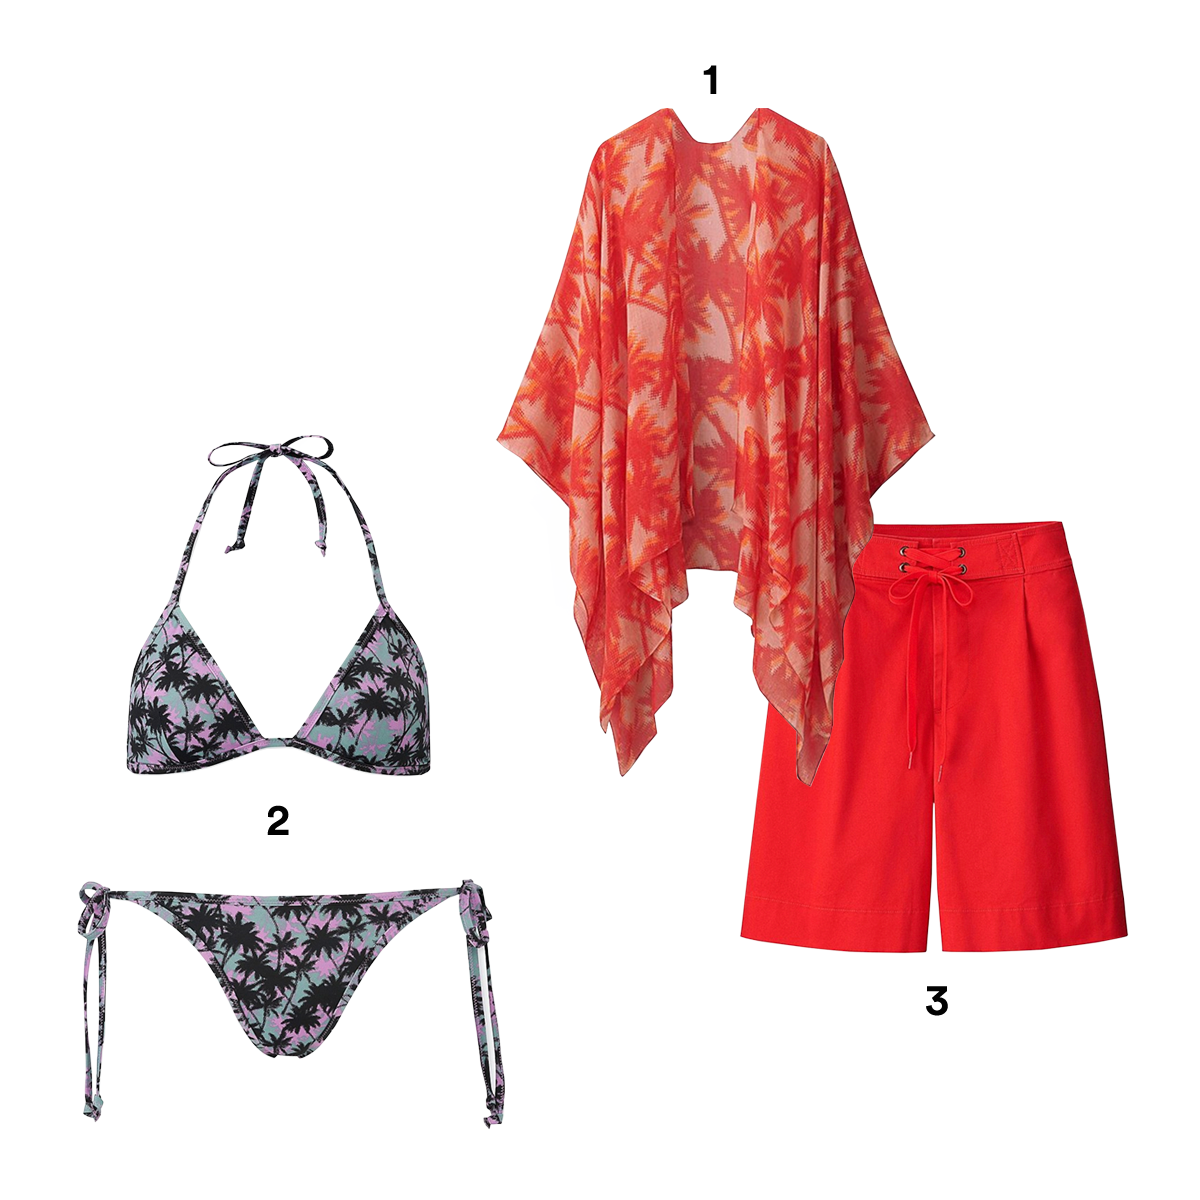 1) UNIQLO X TOMAS MAIER Palm-Print Stole, available at Uniqlo. 2) UNIQLO X TOMAS MAIER Printed Swim Triangle Bikini, available at Uniqlo. 3) UNIQLO X TOMAS MAIER Chino Wide Shorts, available at Uniqlo. 4) UNIQLO X TOMAS MAIER Printed Short-Sleeve Tee Dress, available at Uniqlo. 5) UNIQLO X TOMAS MAIER Printed Long-Sleeve Rash Guard, available at Uniqlo. 6) UNIQLO X TOMAS MAIER Airism Pile Lounge Long-Sleeve Hoodie, available at Uniqlo.